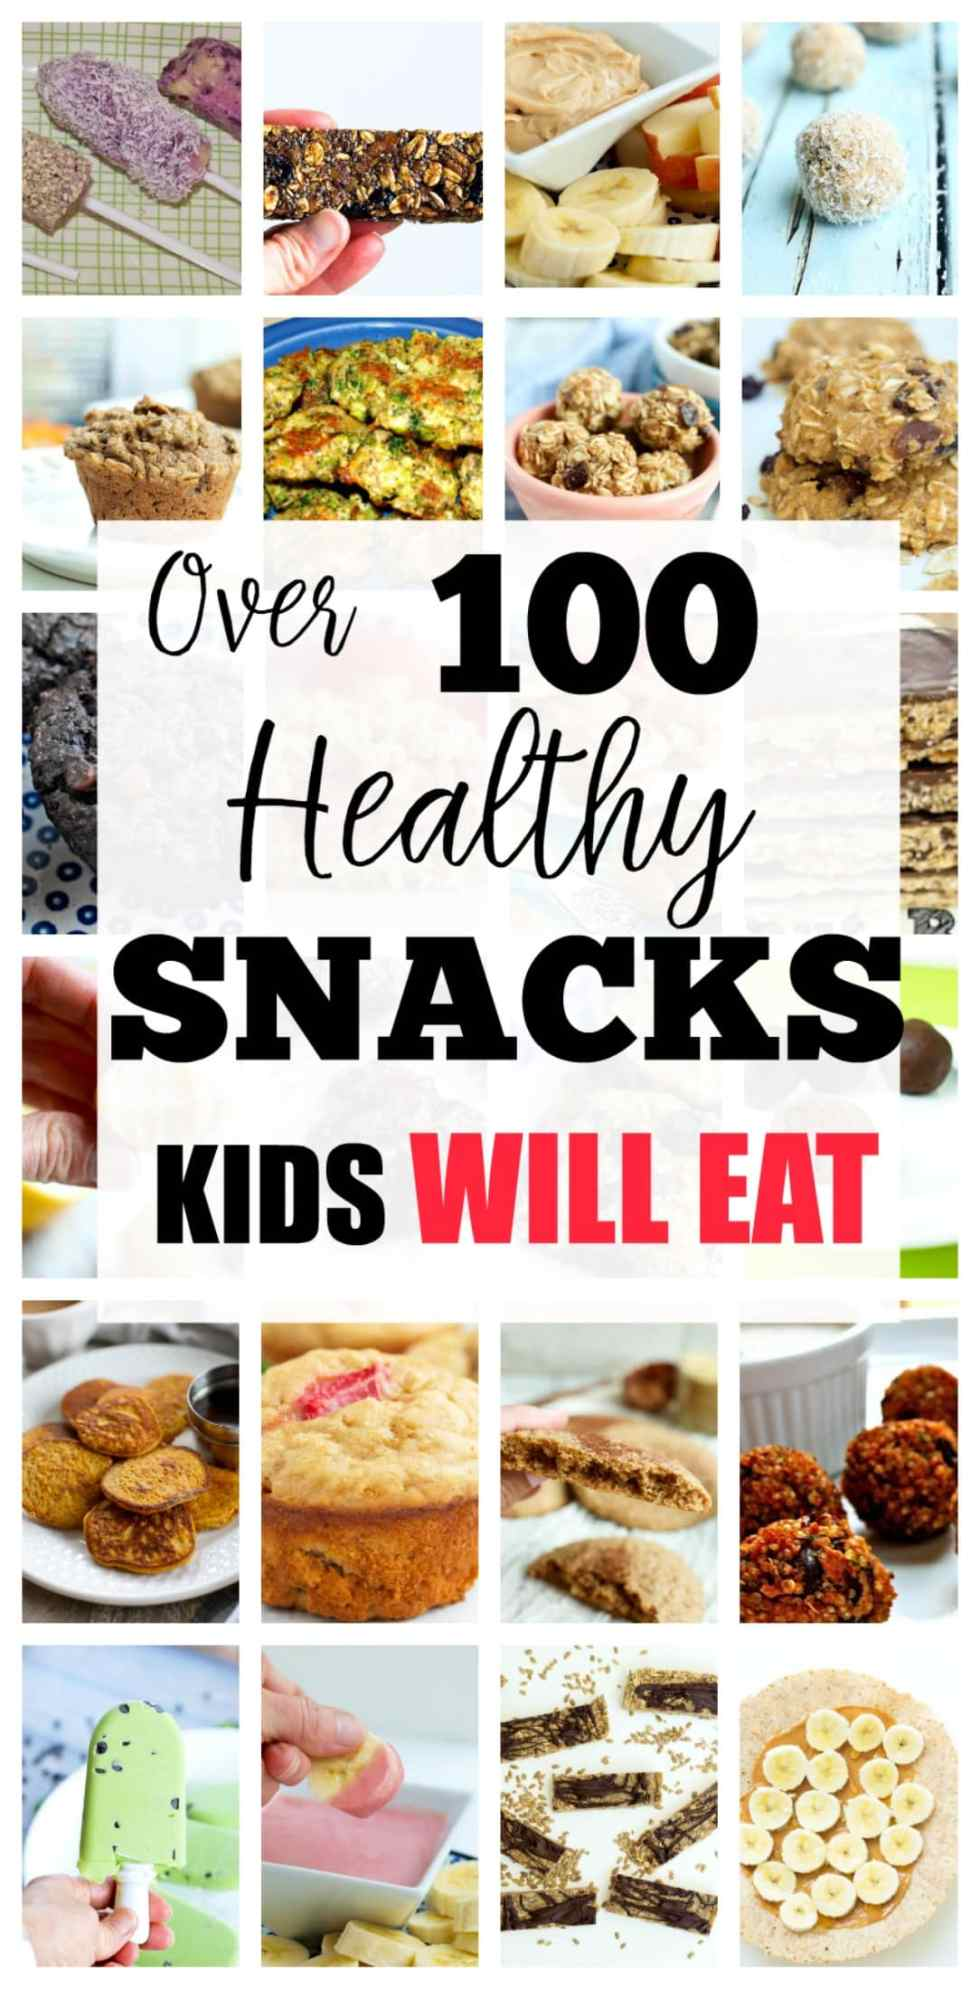 Healthy Snack Ideas for Kids, gluten-free snacks, vegan snacks, all healthy snacks your kids will eat